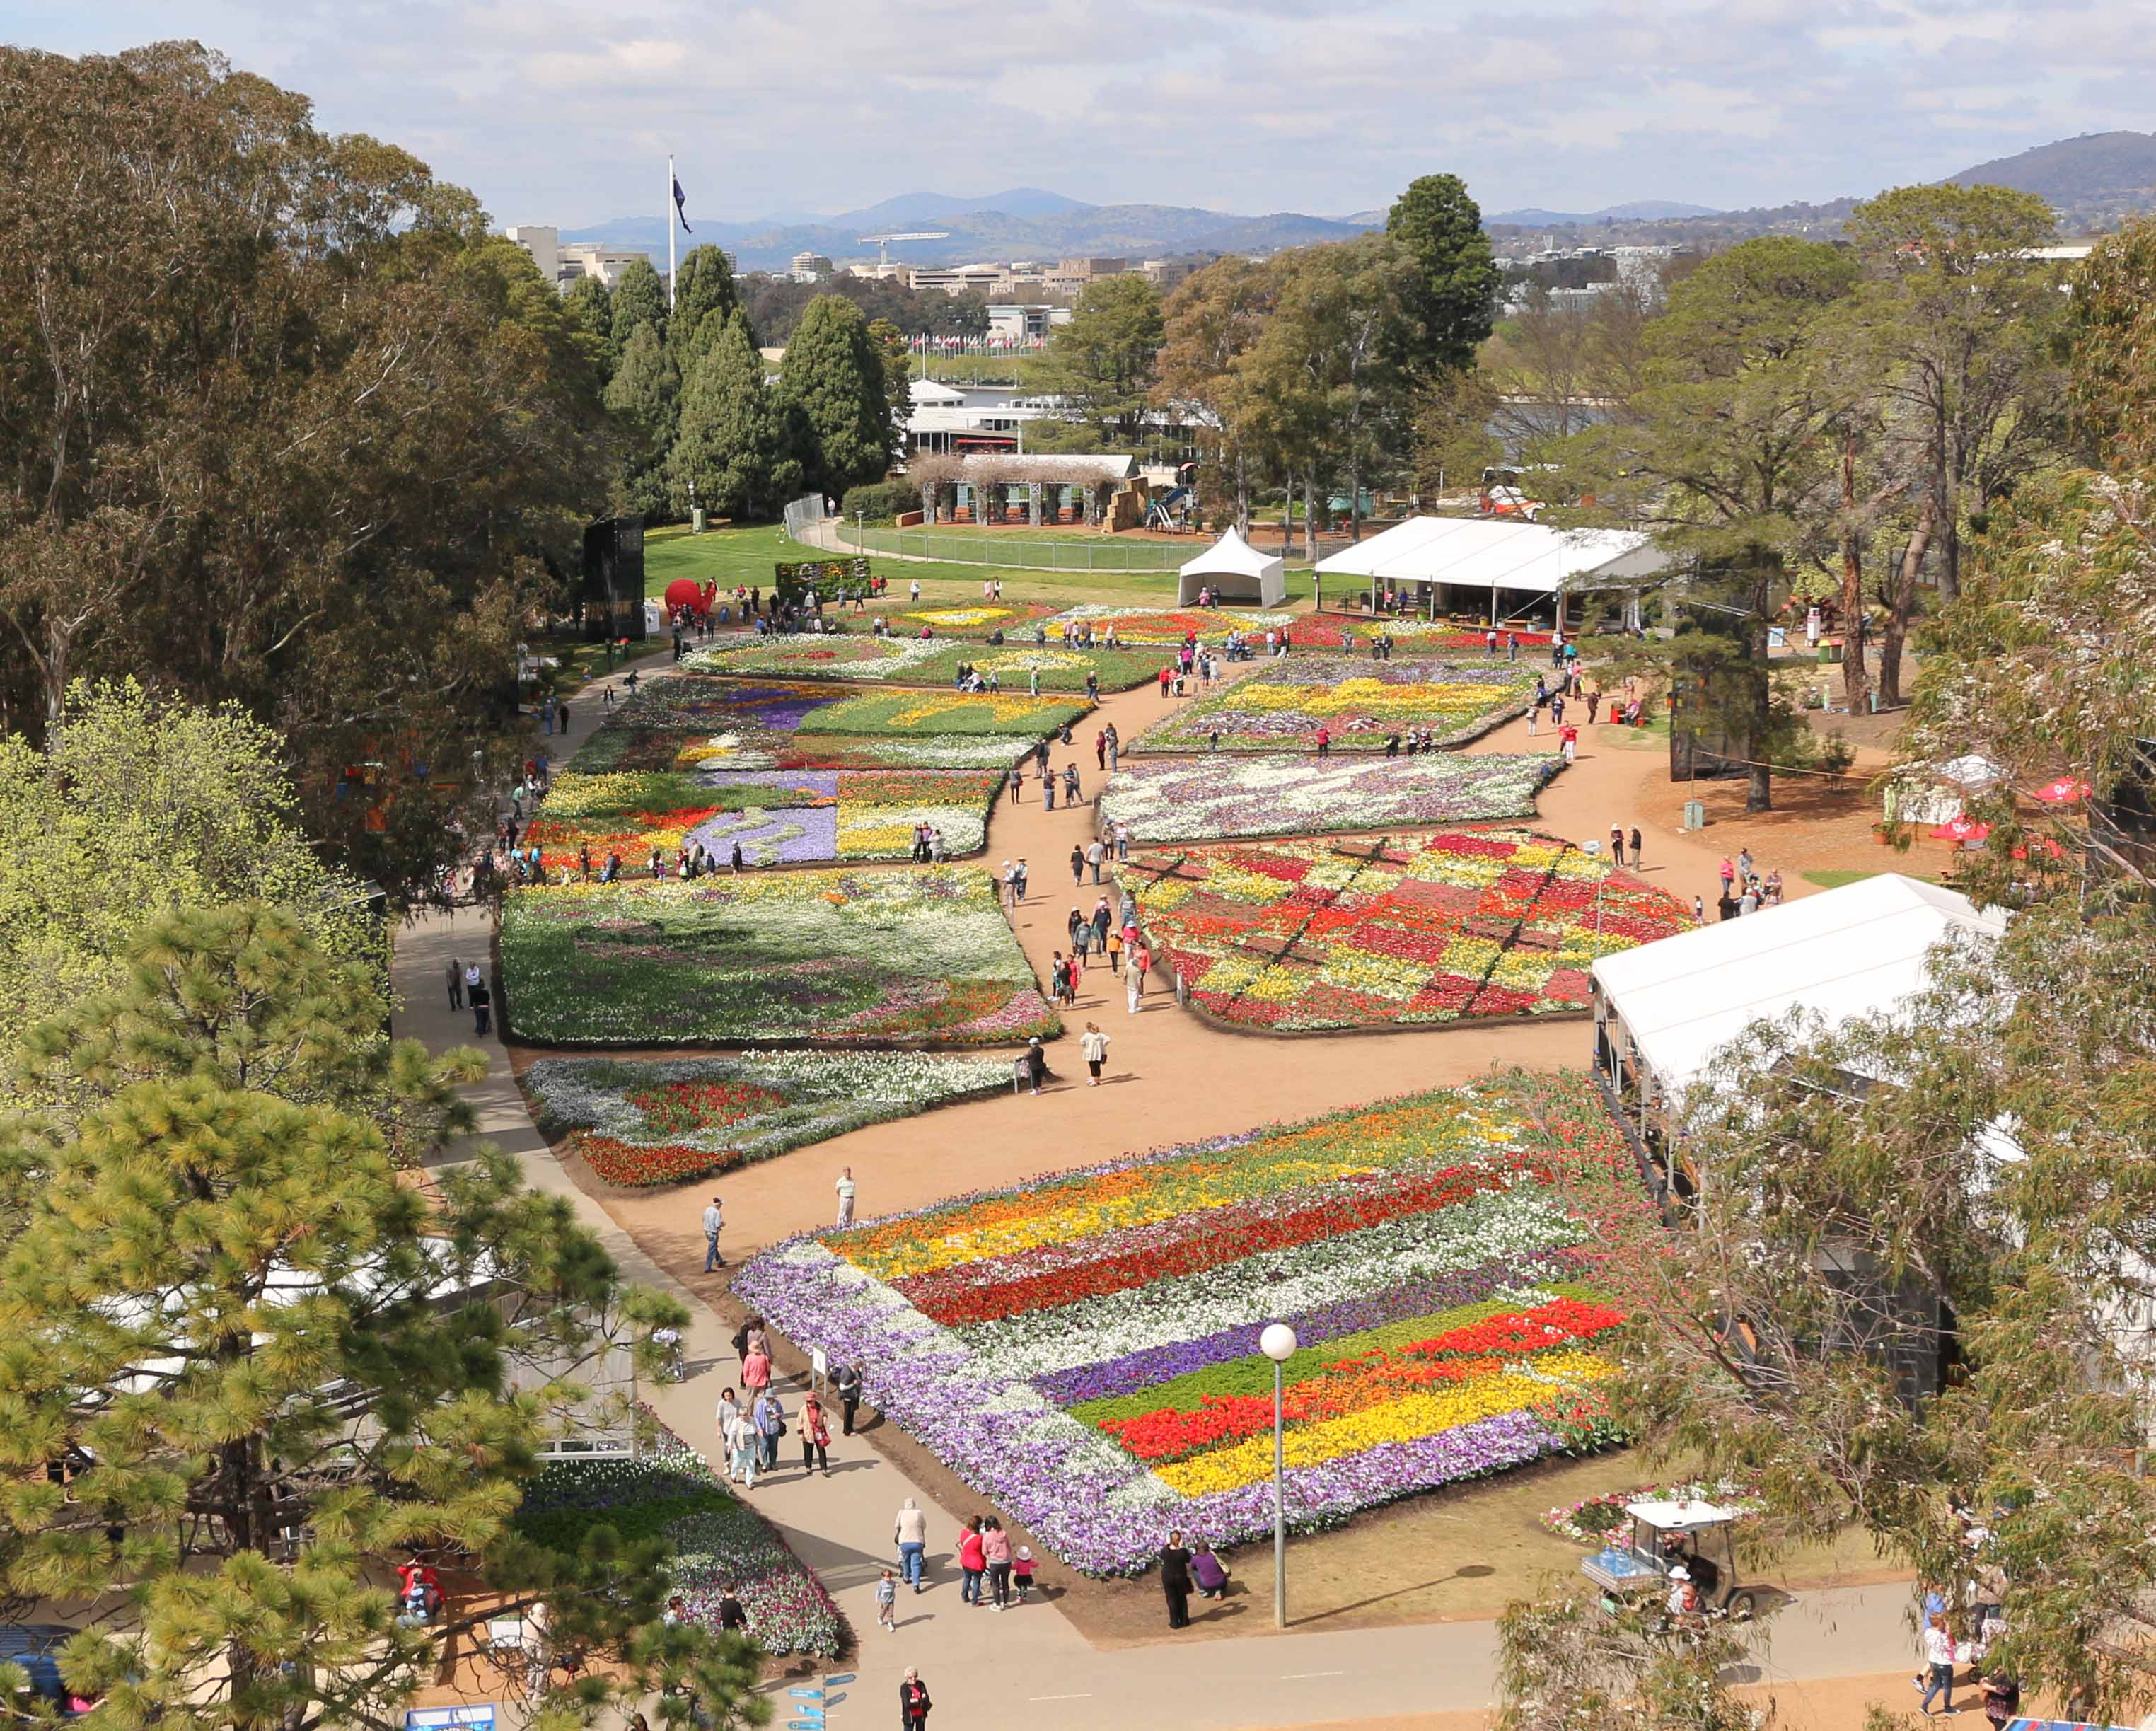 A View of Floriade from Above in the Ferris Wheel